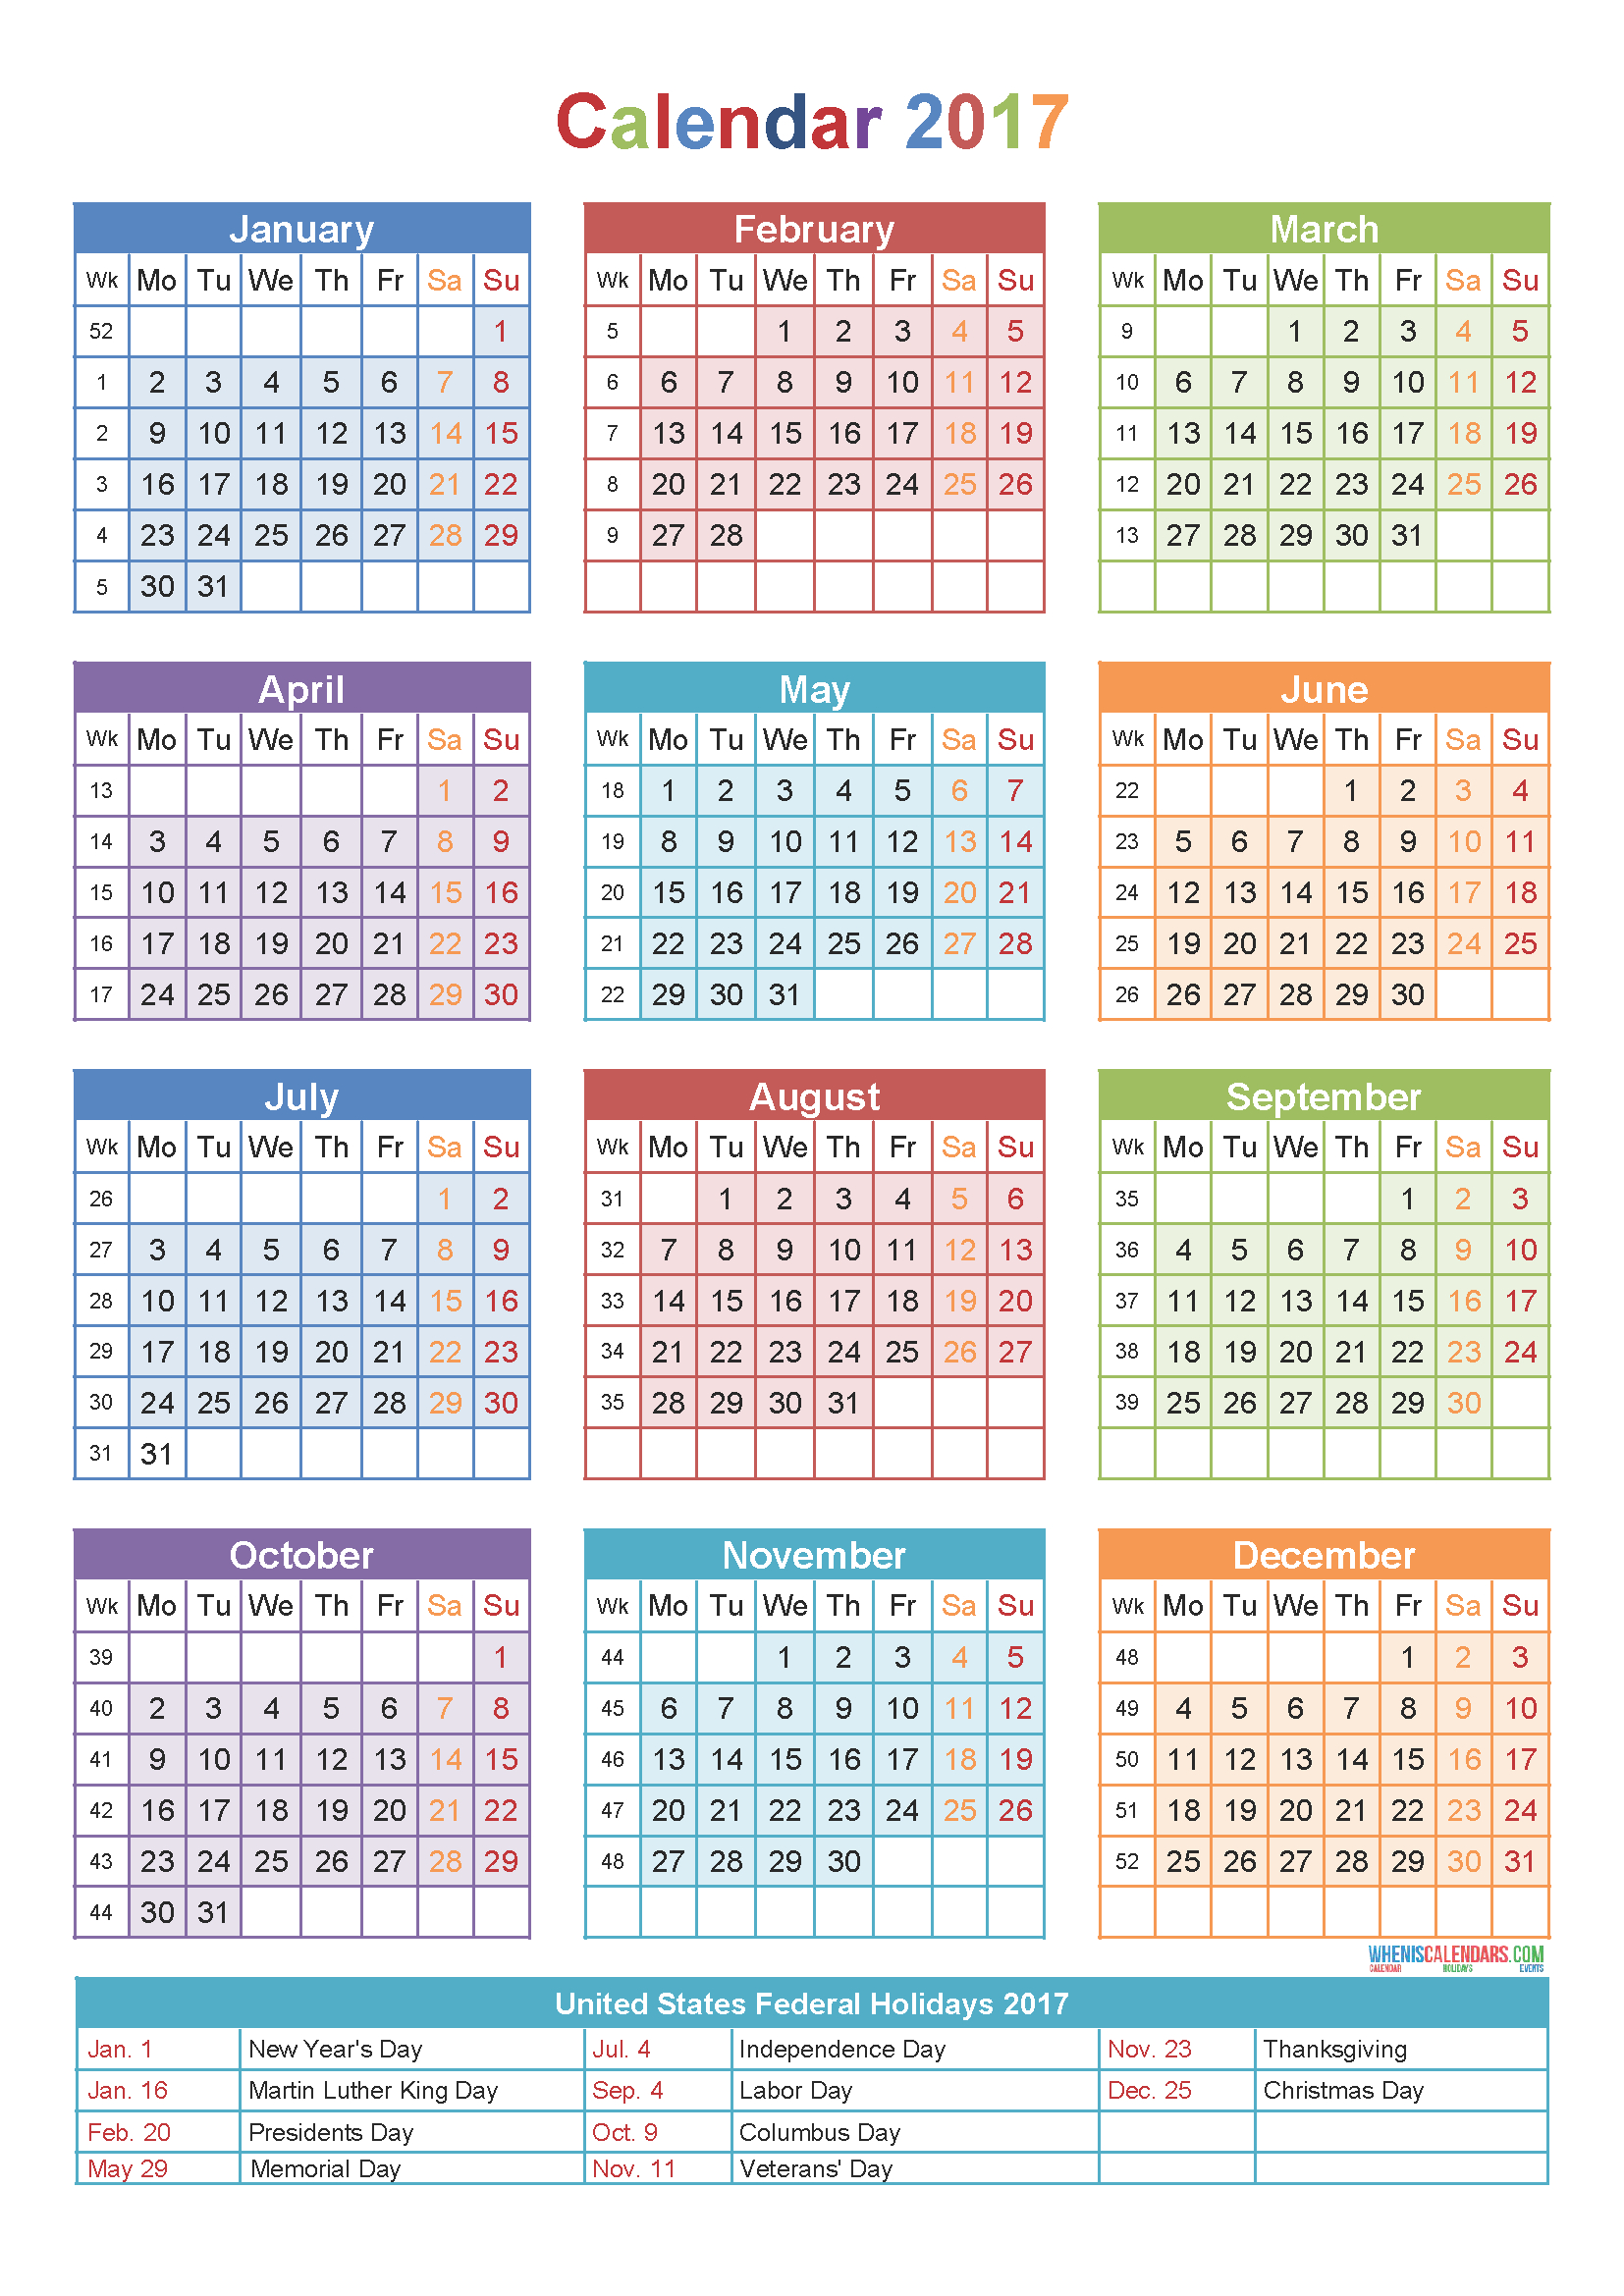 Calendar 2017Week Number | Holidays | Yearly Calendar Template Calendar Week 40 2019